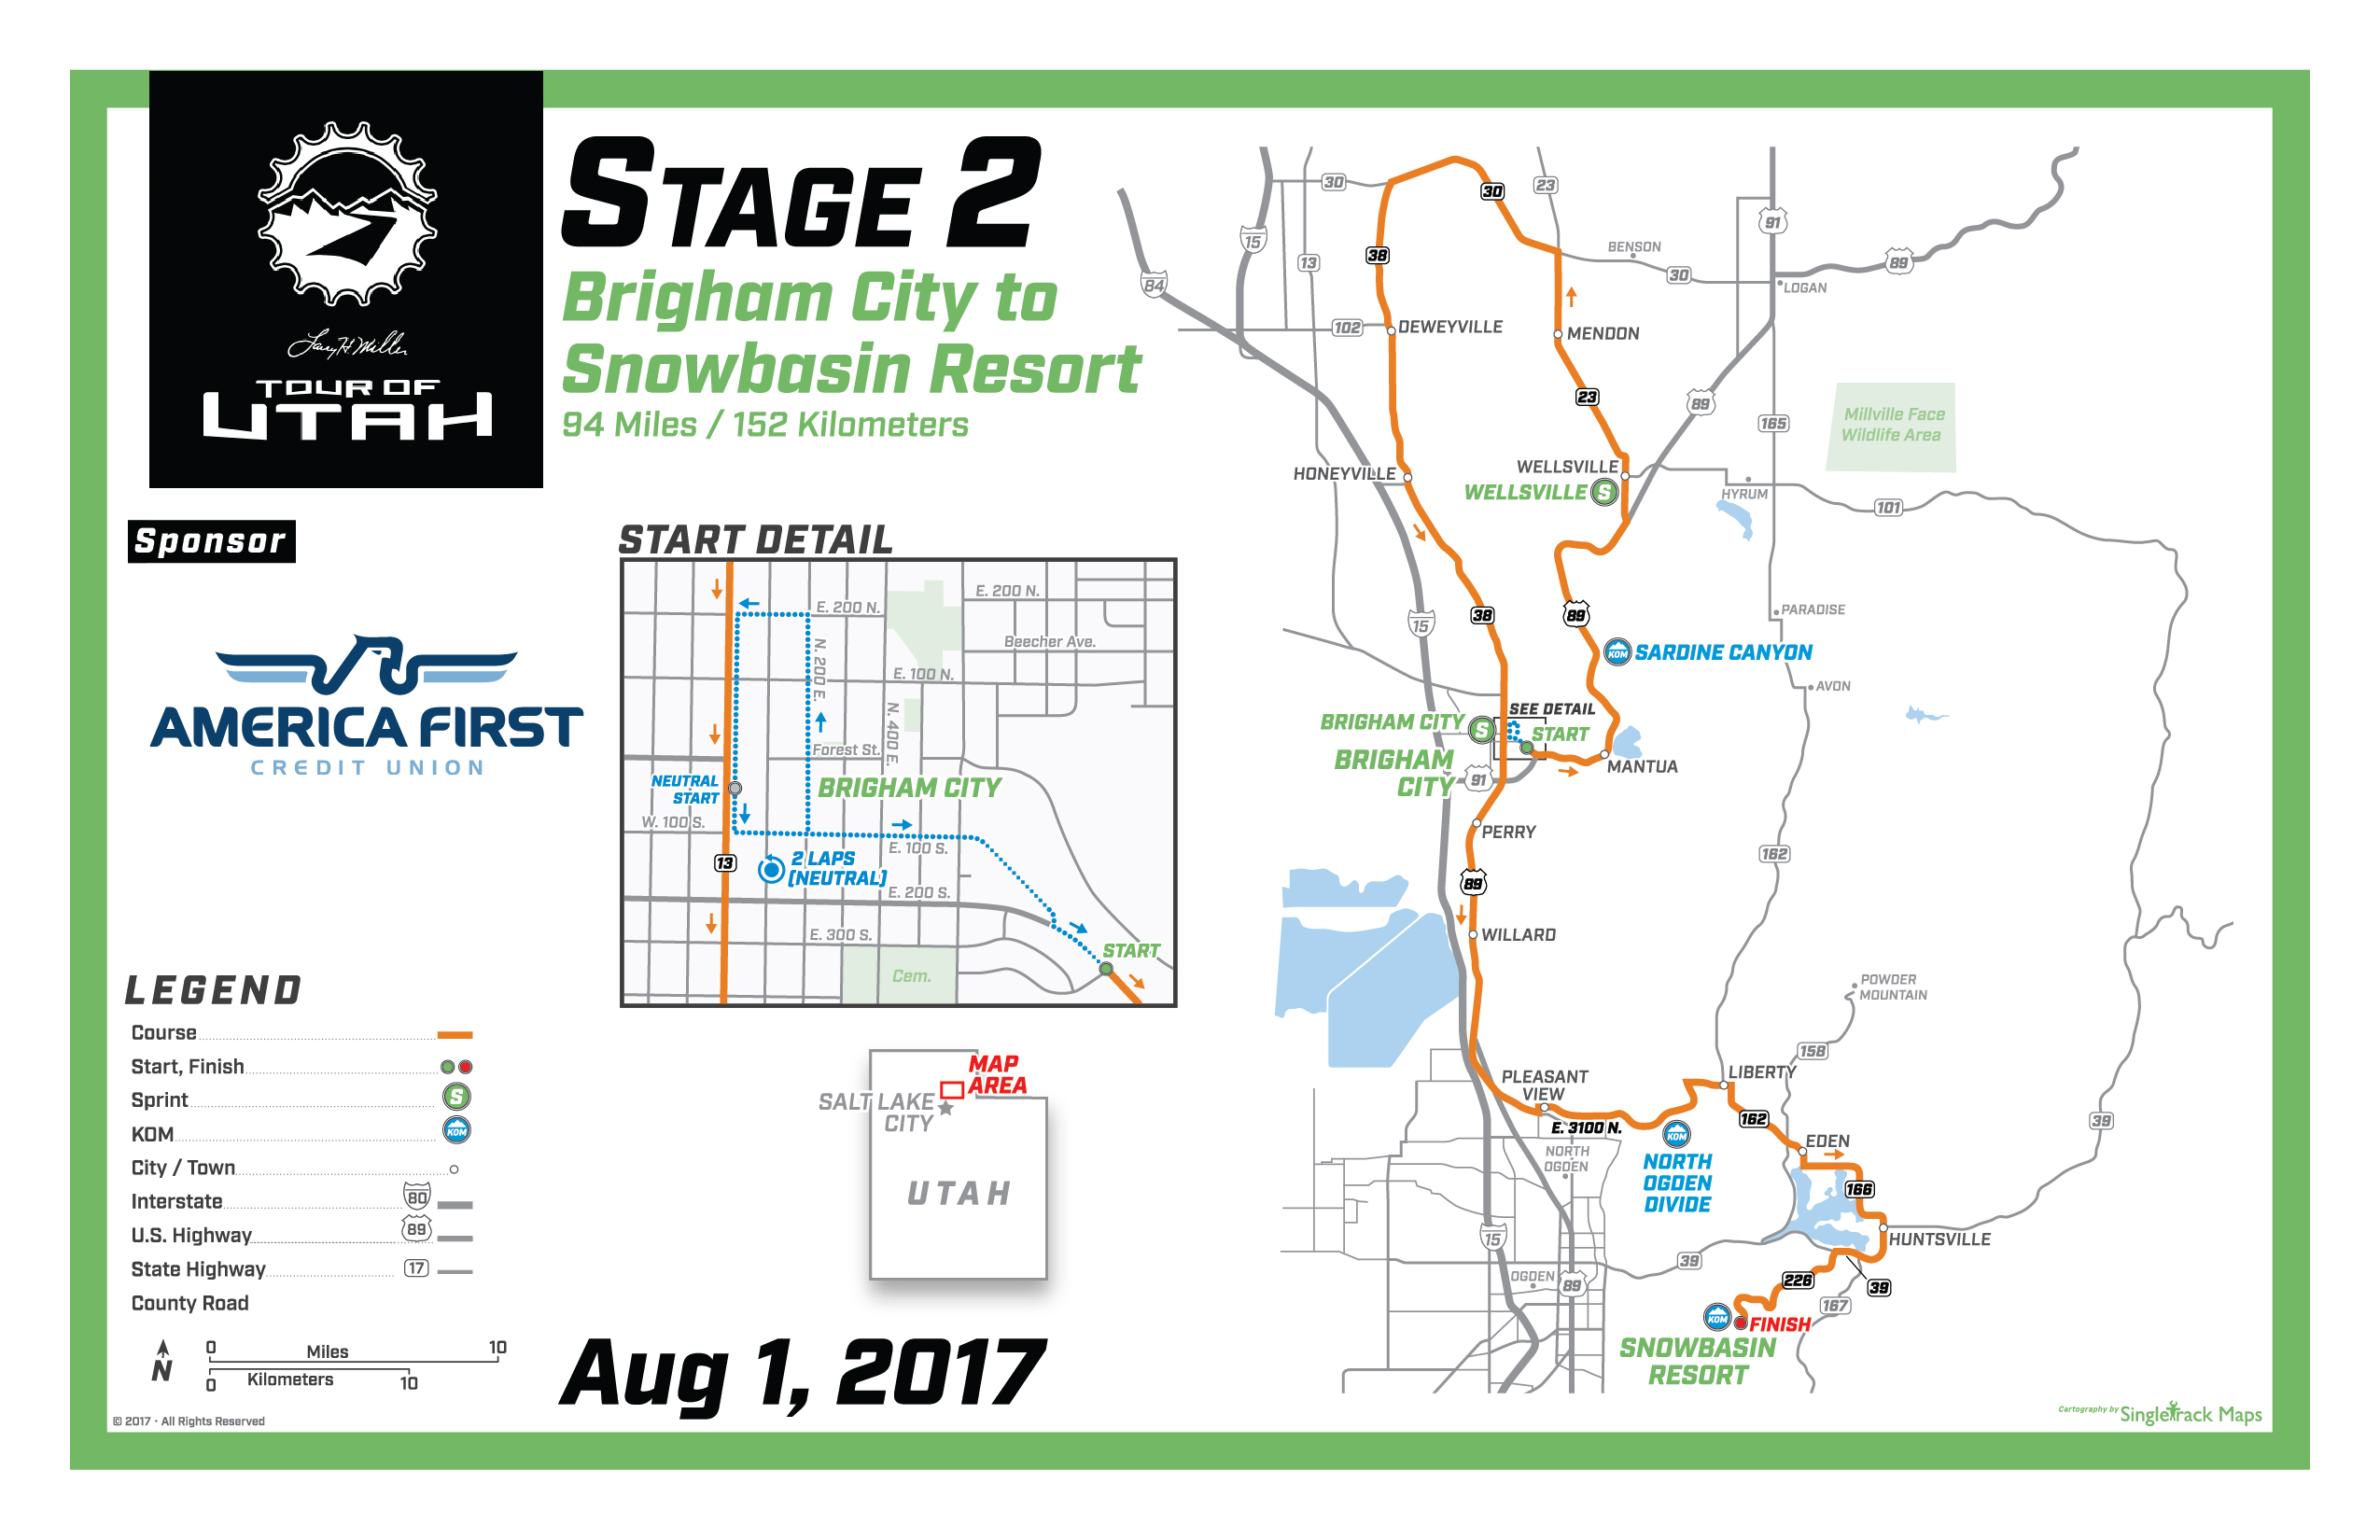 Tou 2017 stage 2 map vprint